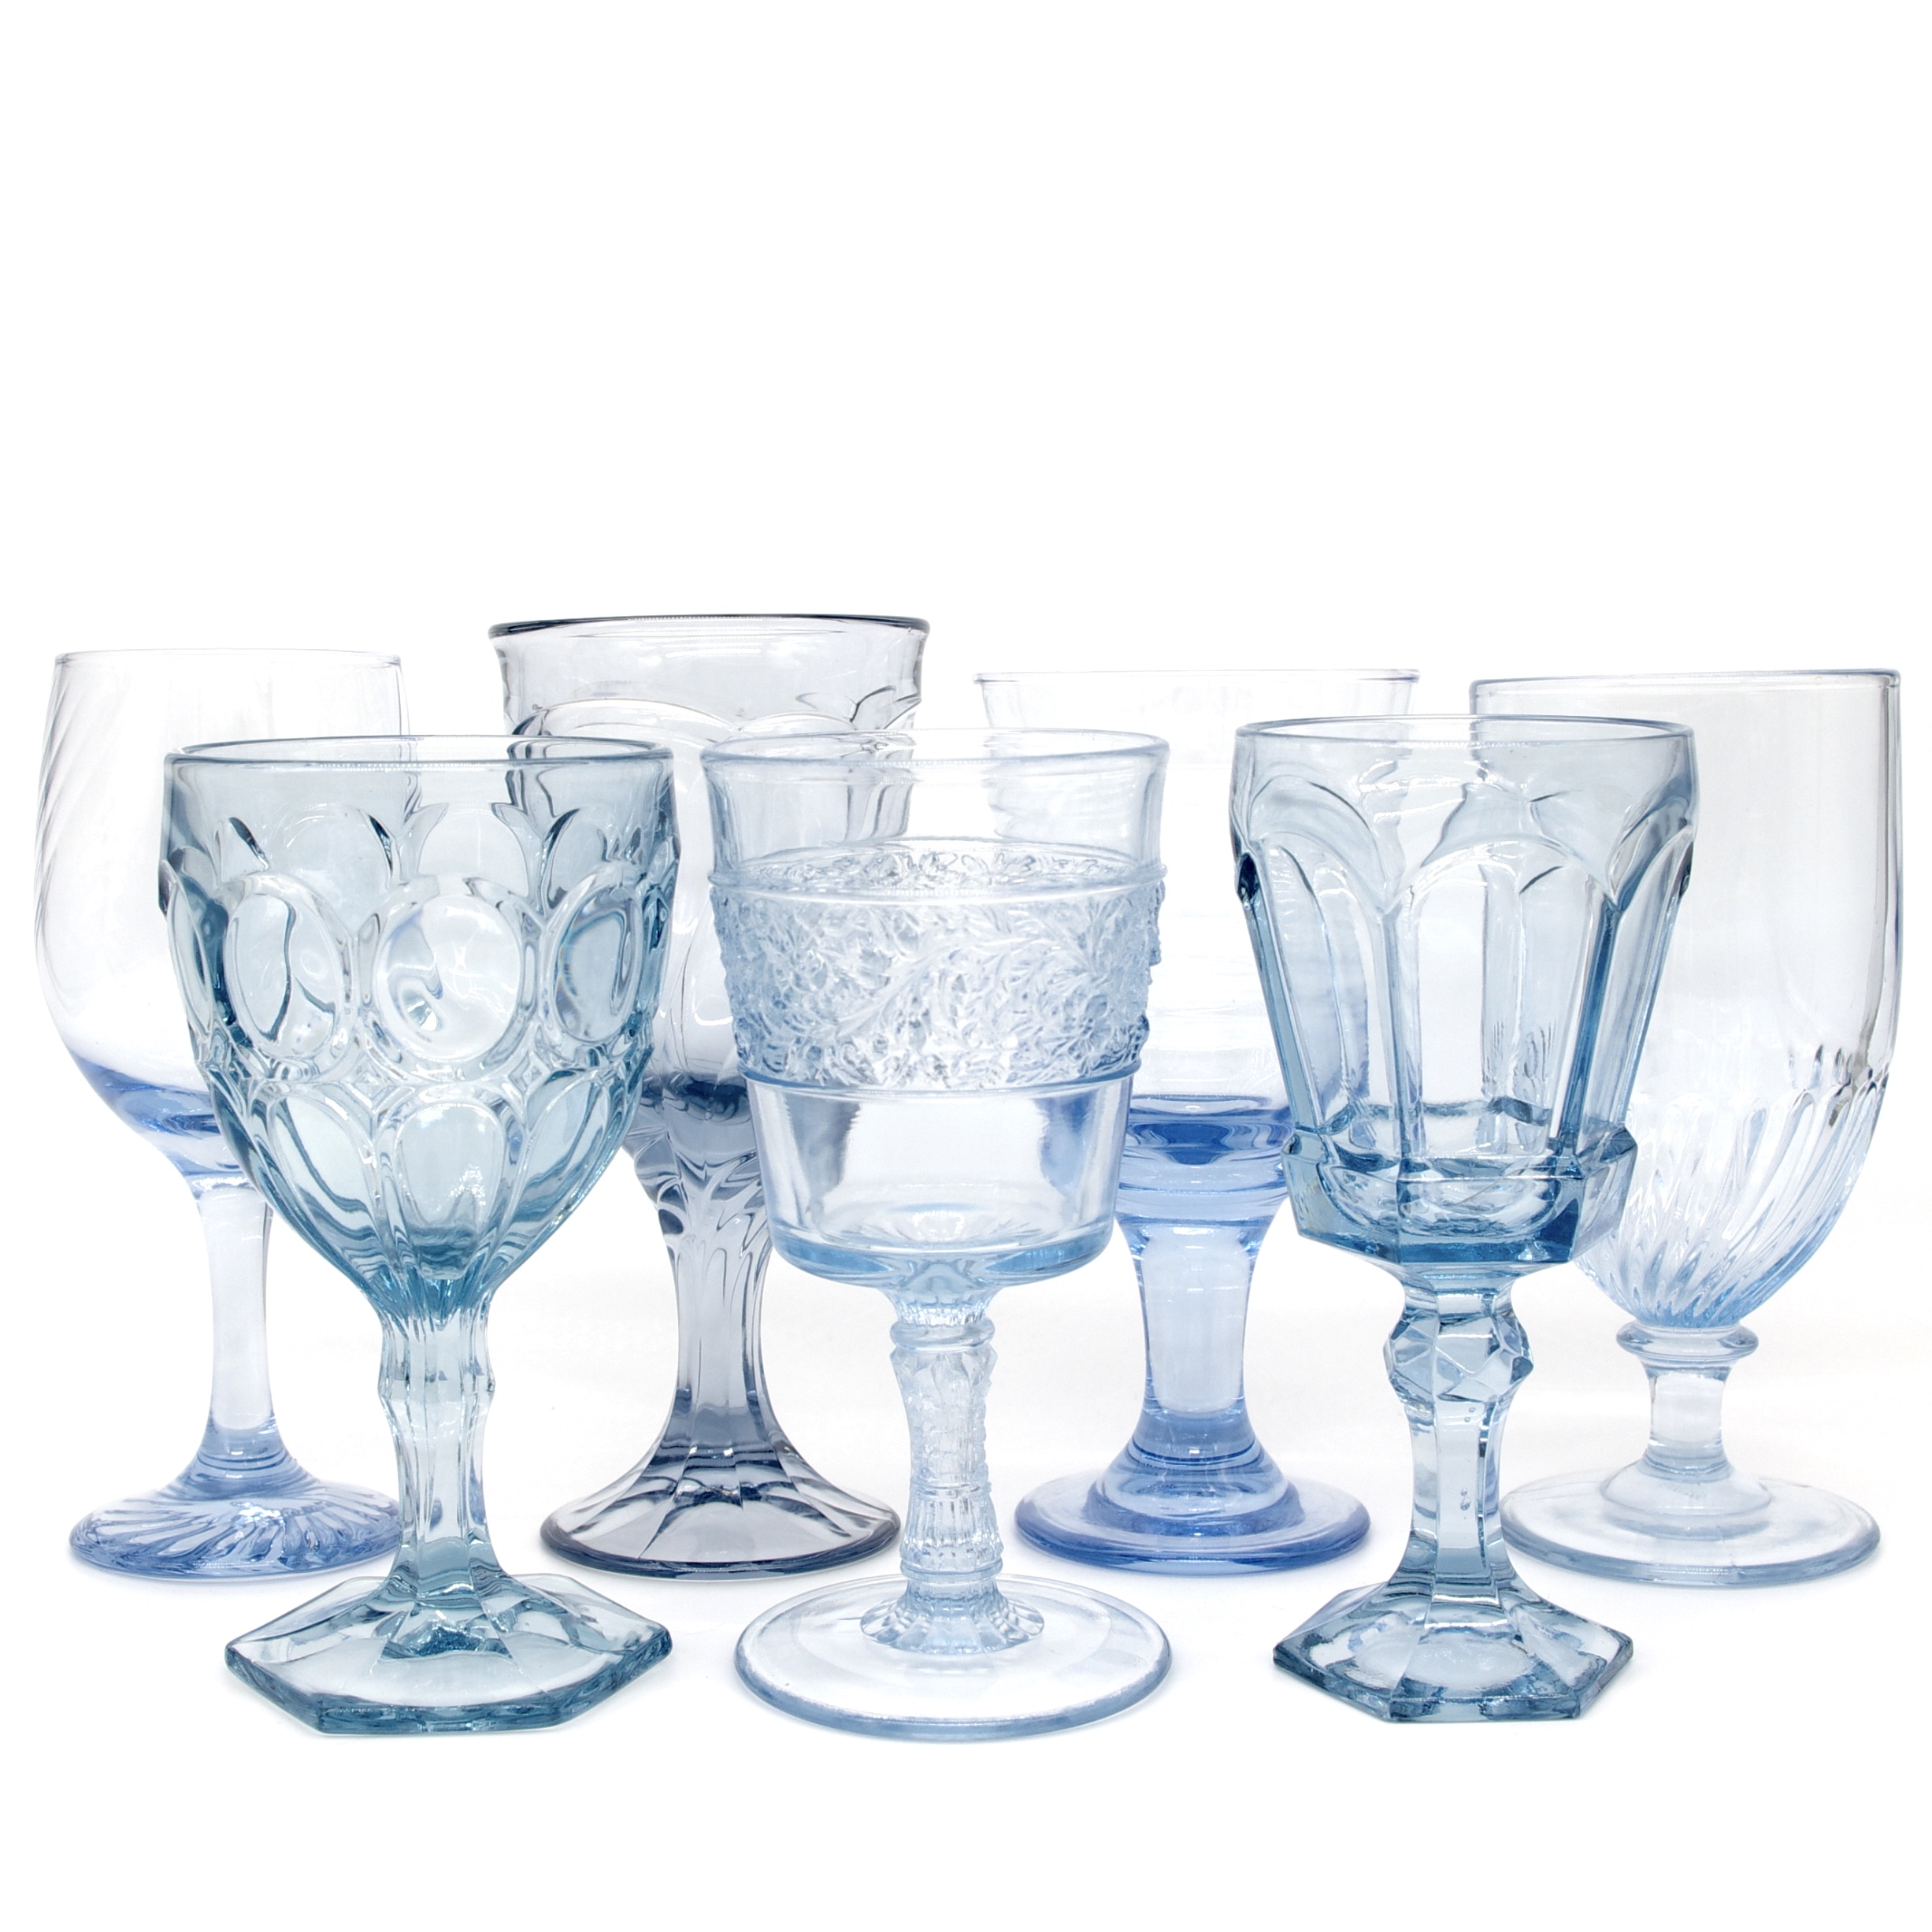 Vintage glassware and goblet rentals